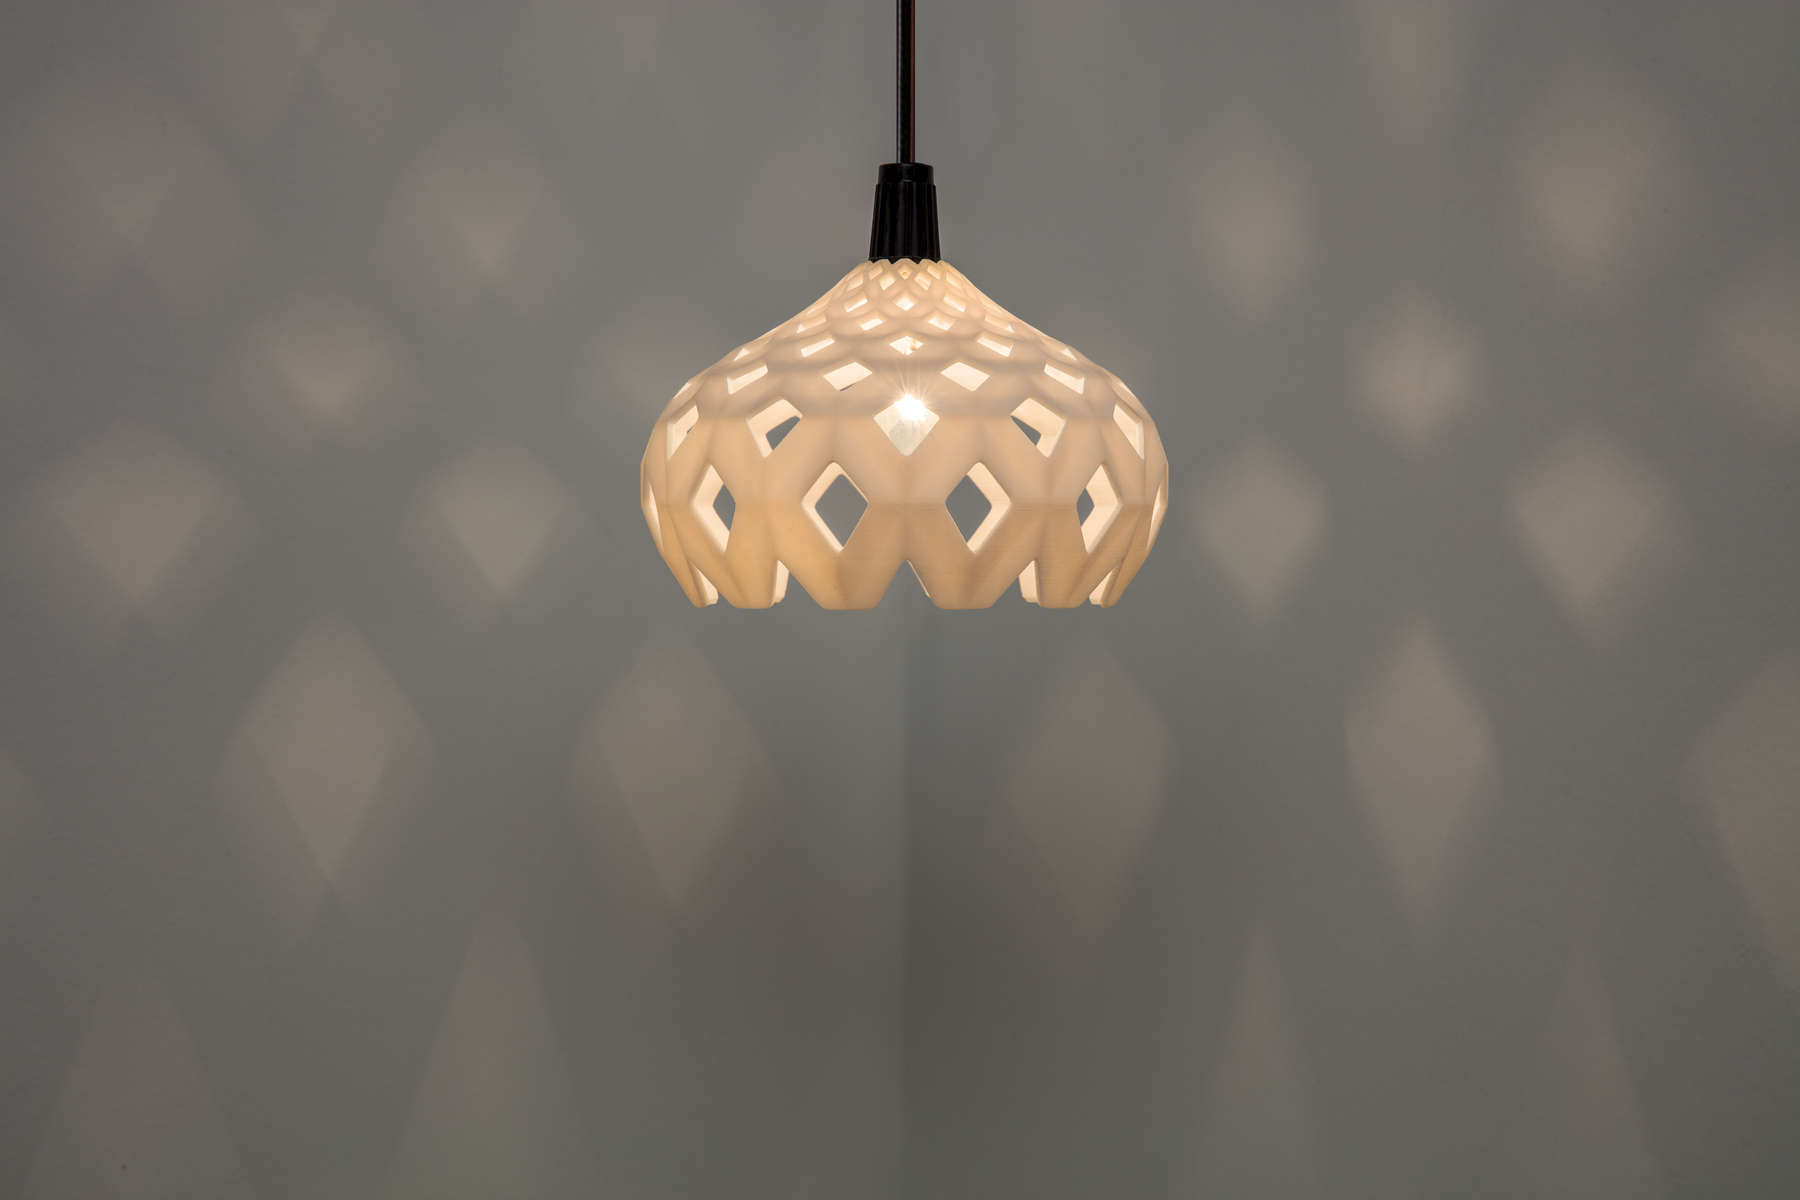 Lampshade-in-Use_Ceramic_D2A6740-2_fnl